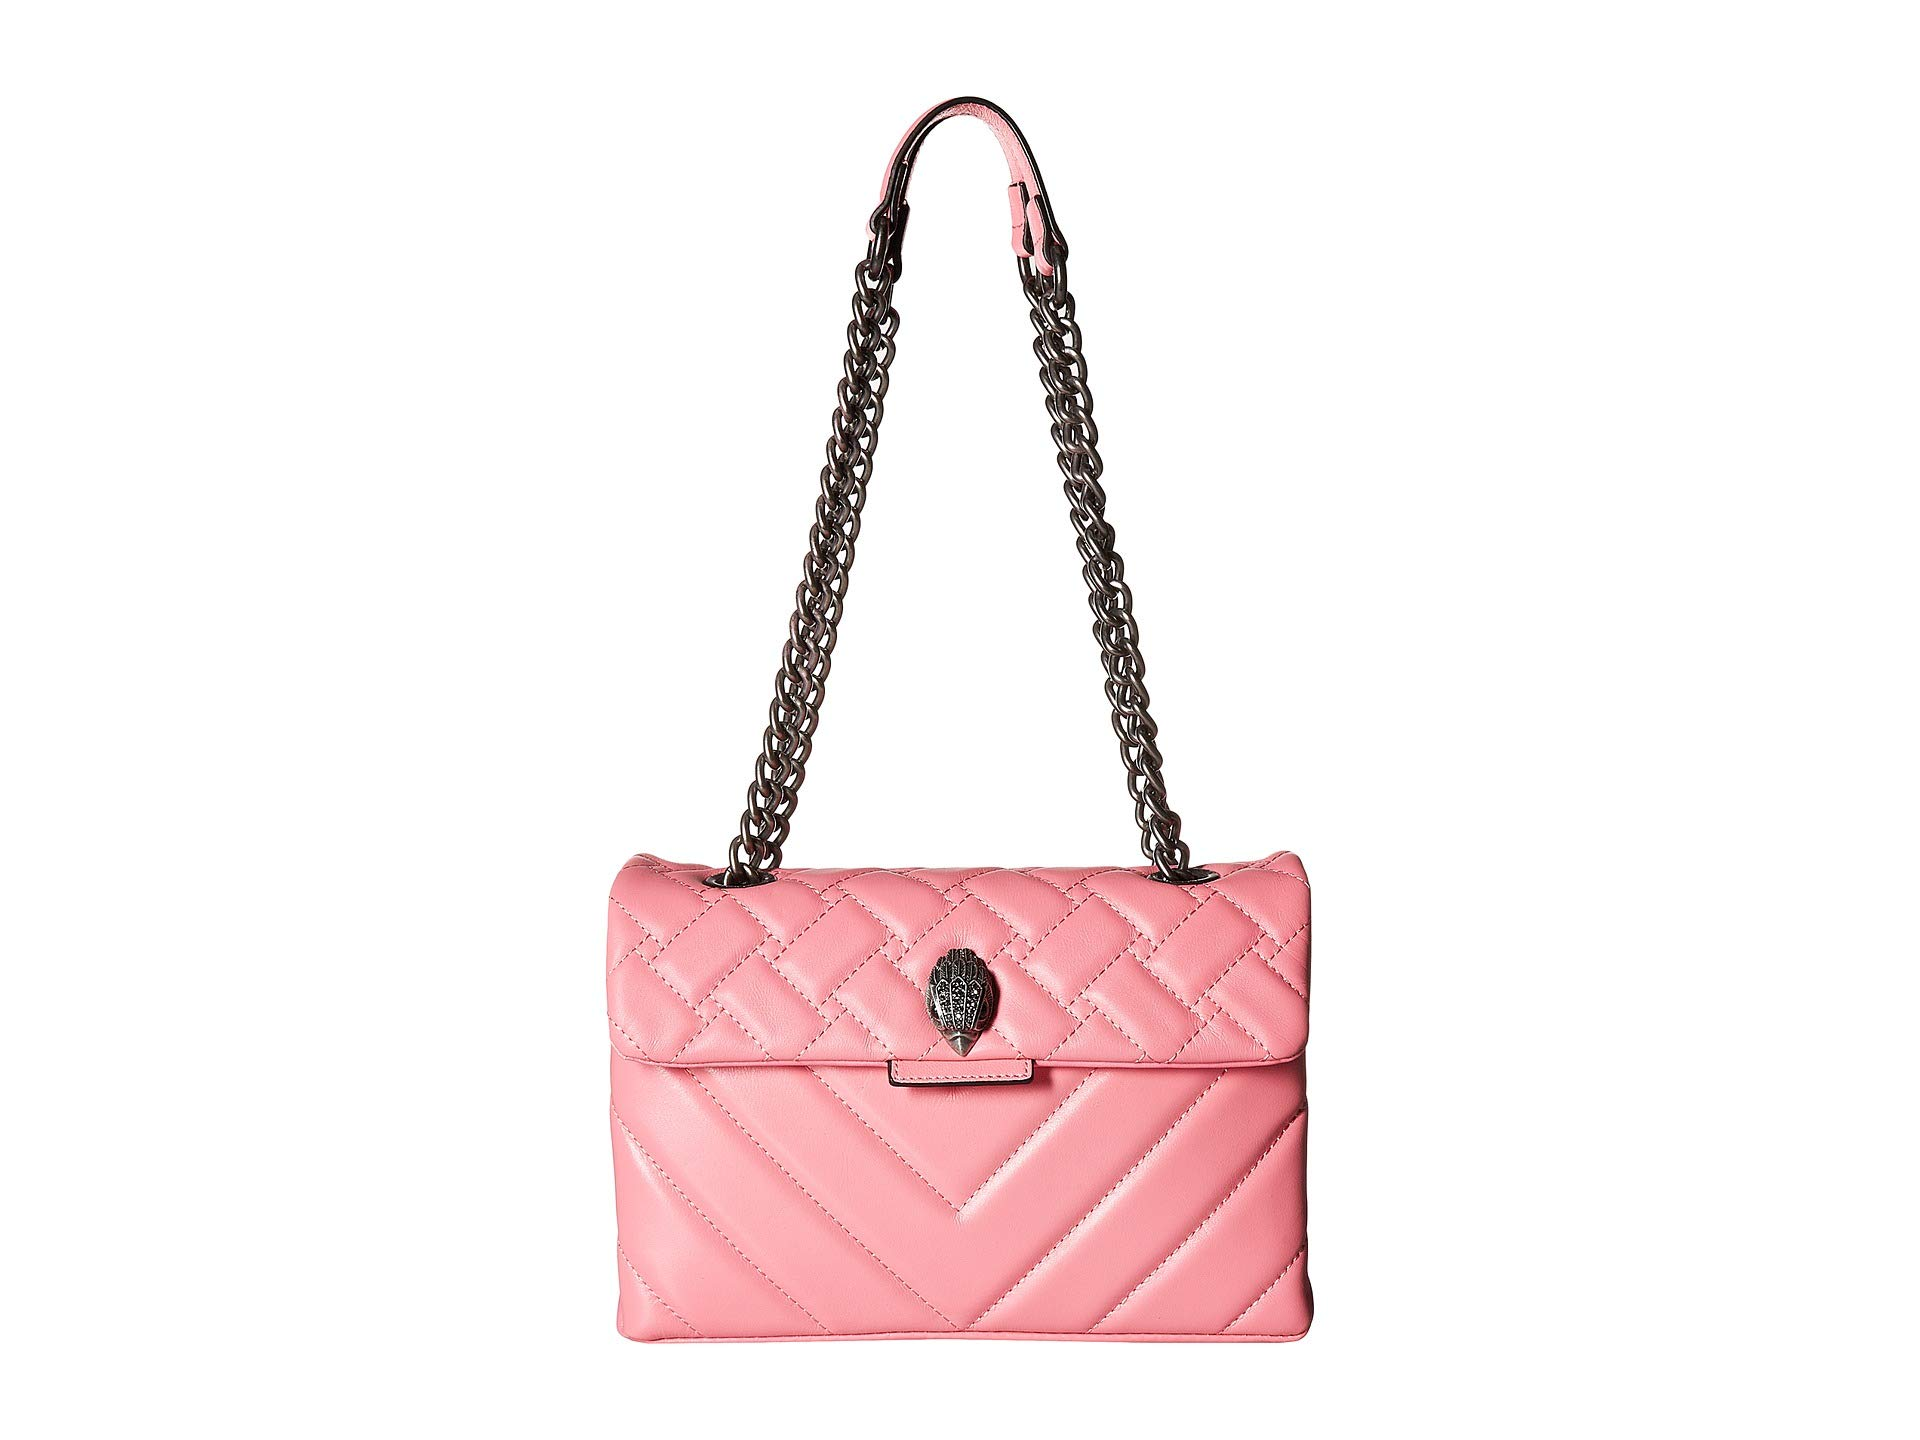 Kurt Pink Geiger London Bag Kensington Shoulder Comb Leather rHrpwqRY